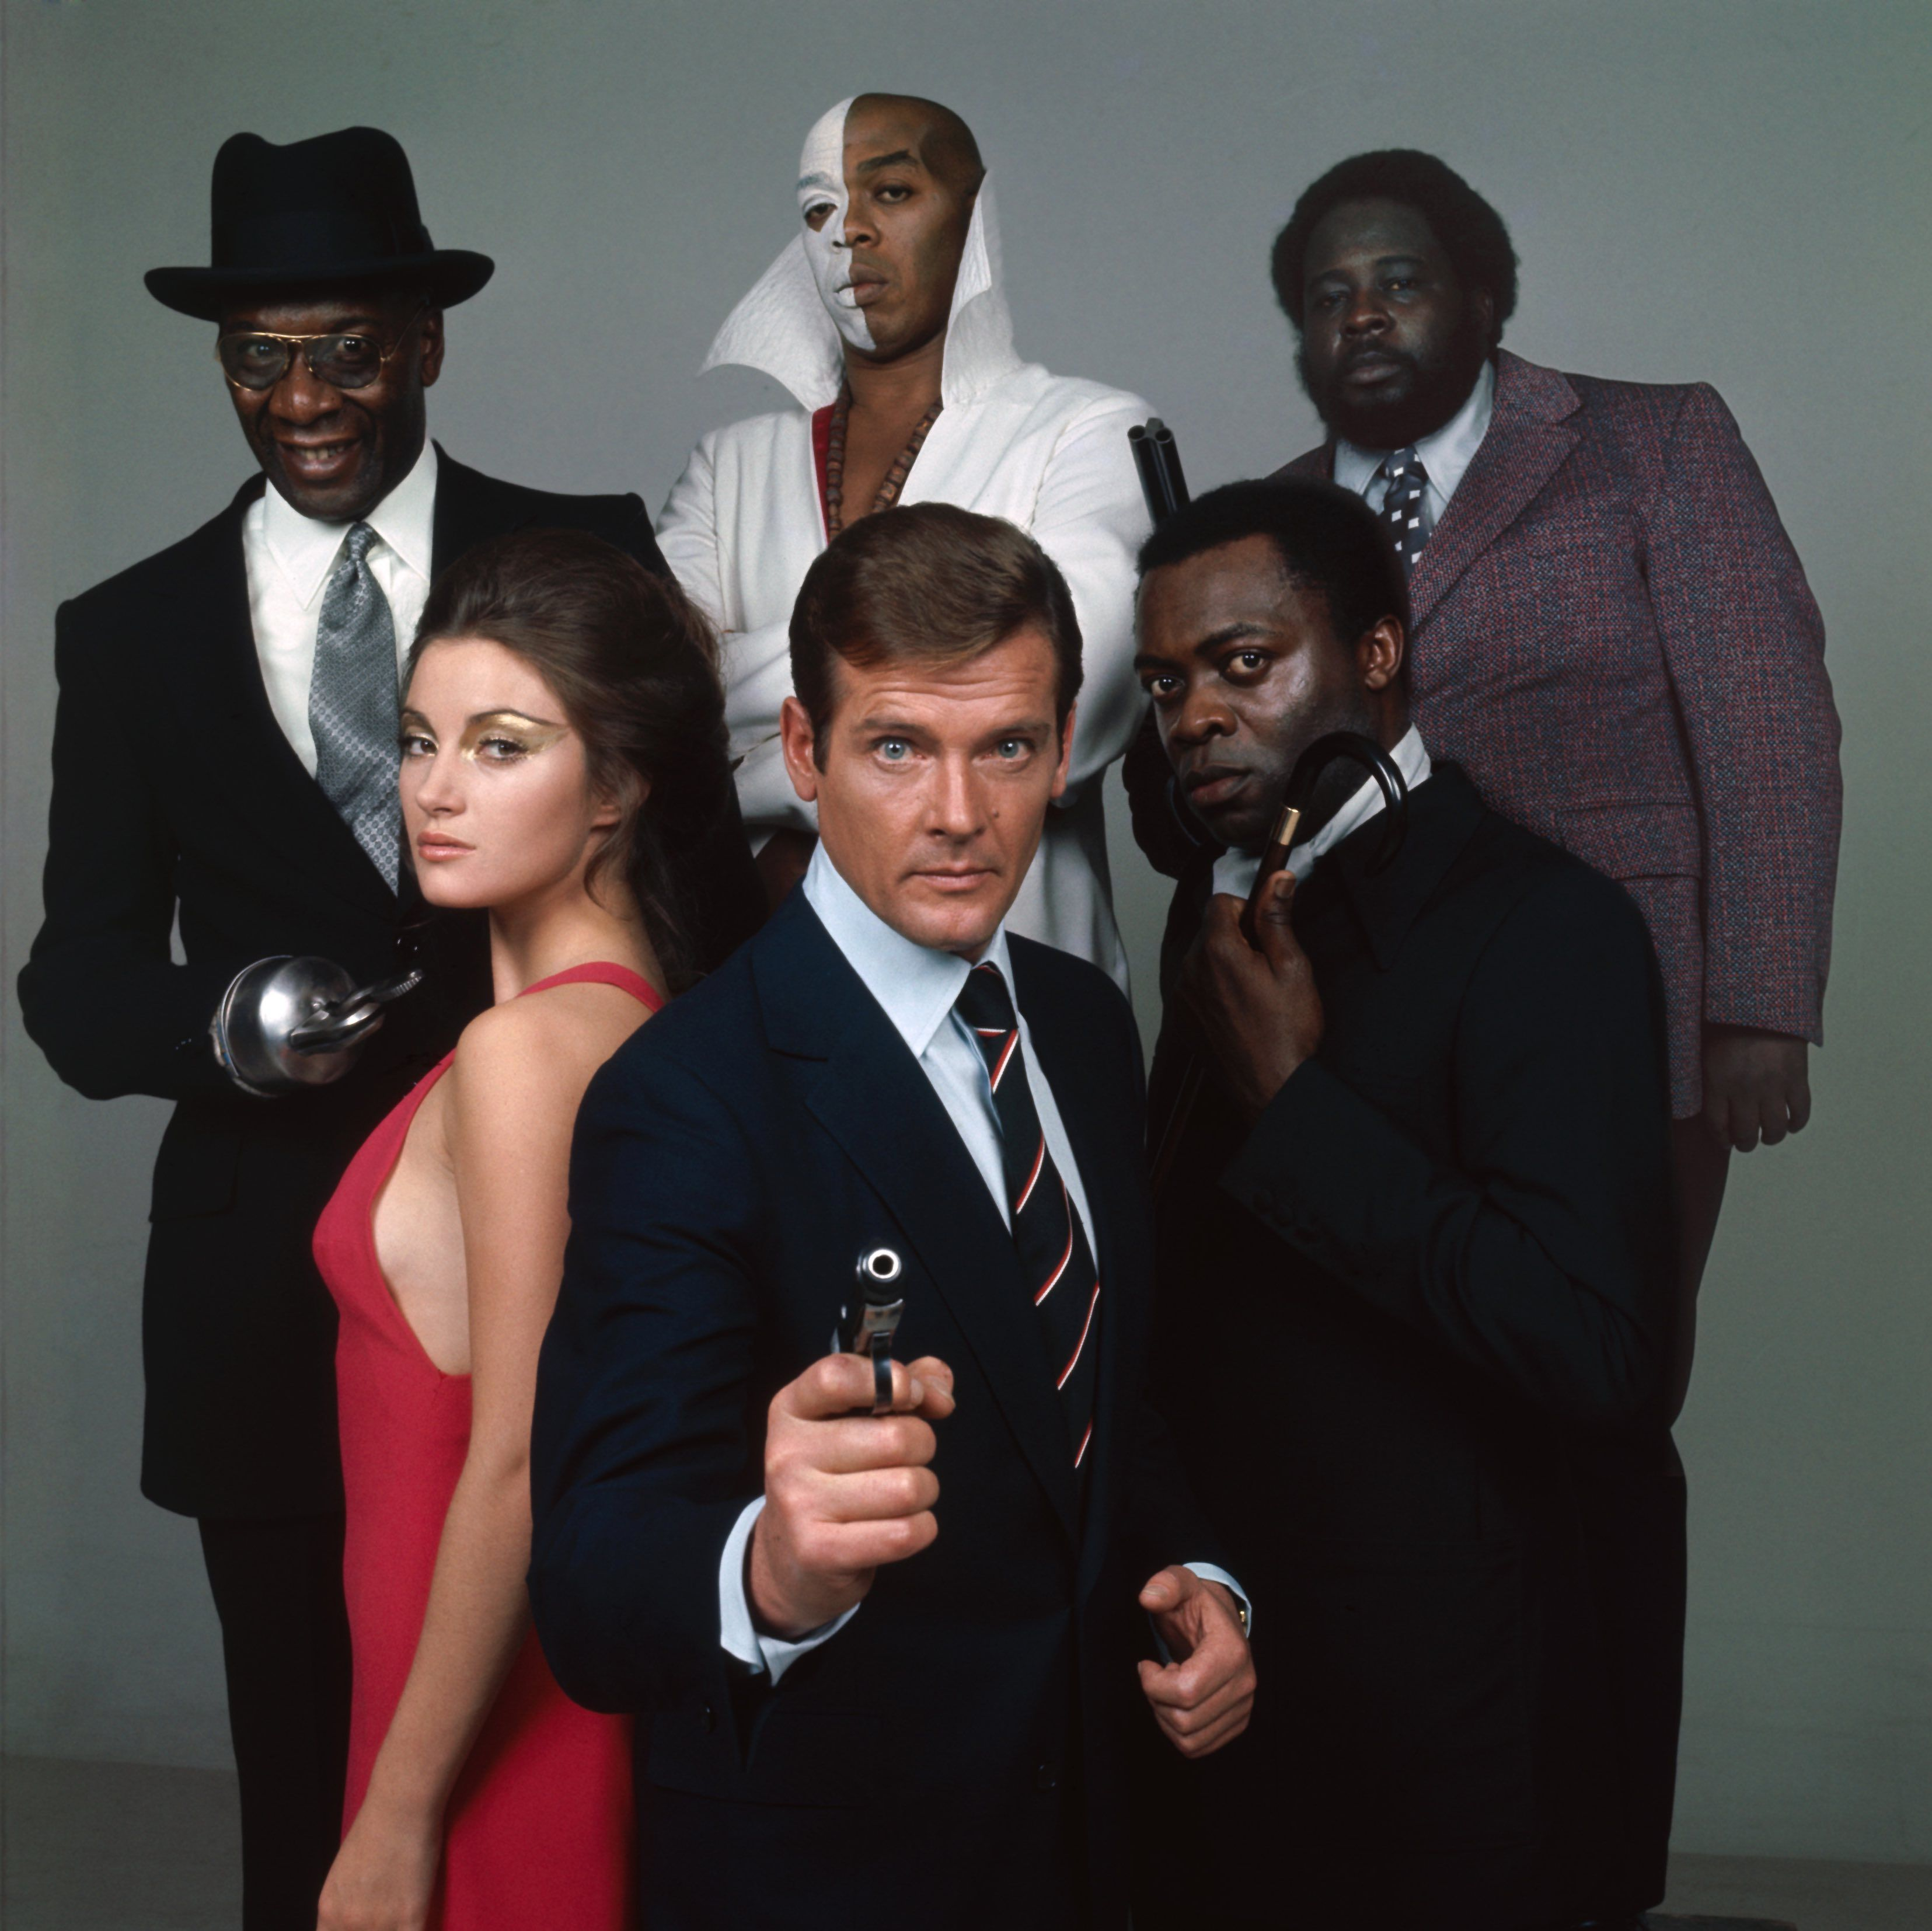 Bond Actor Roger Moore A Life In Pictures James Bond Movies